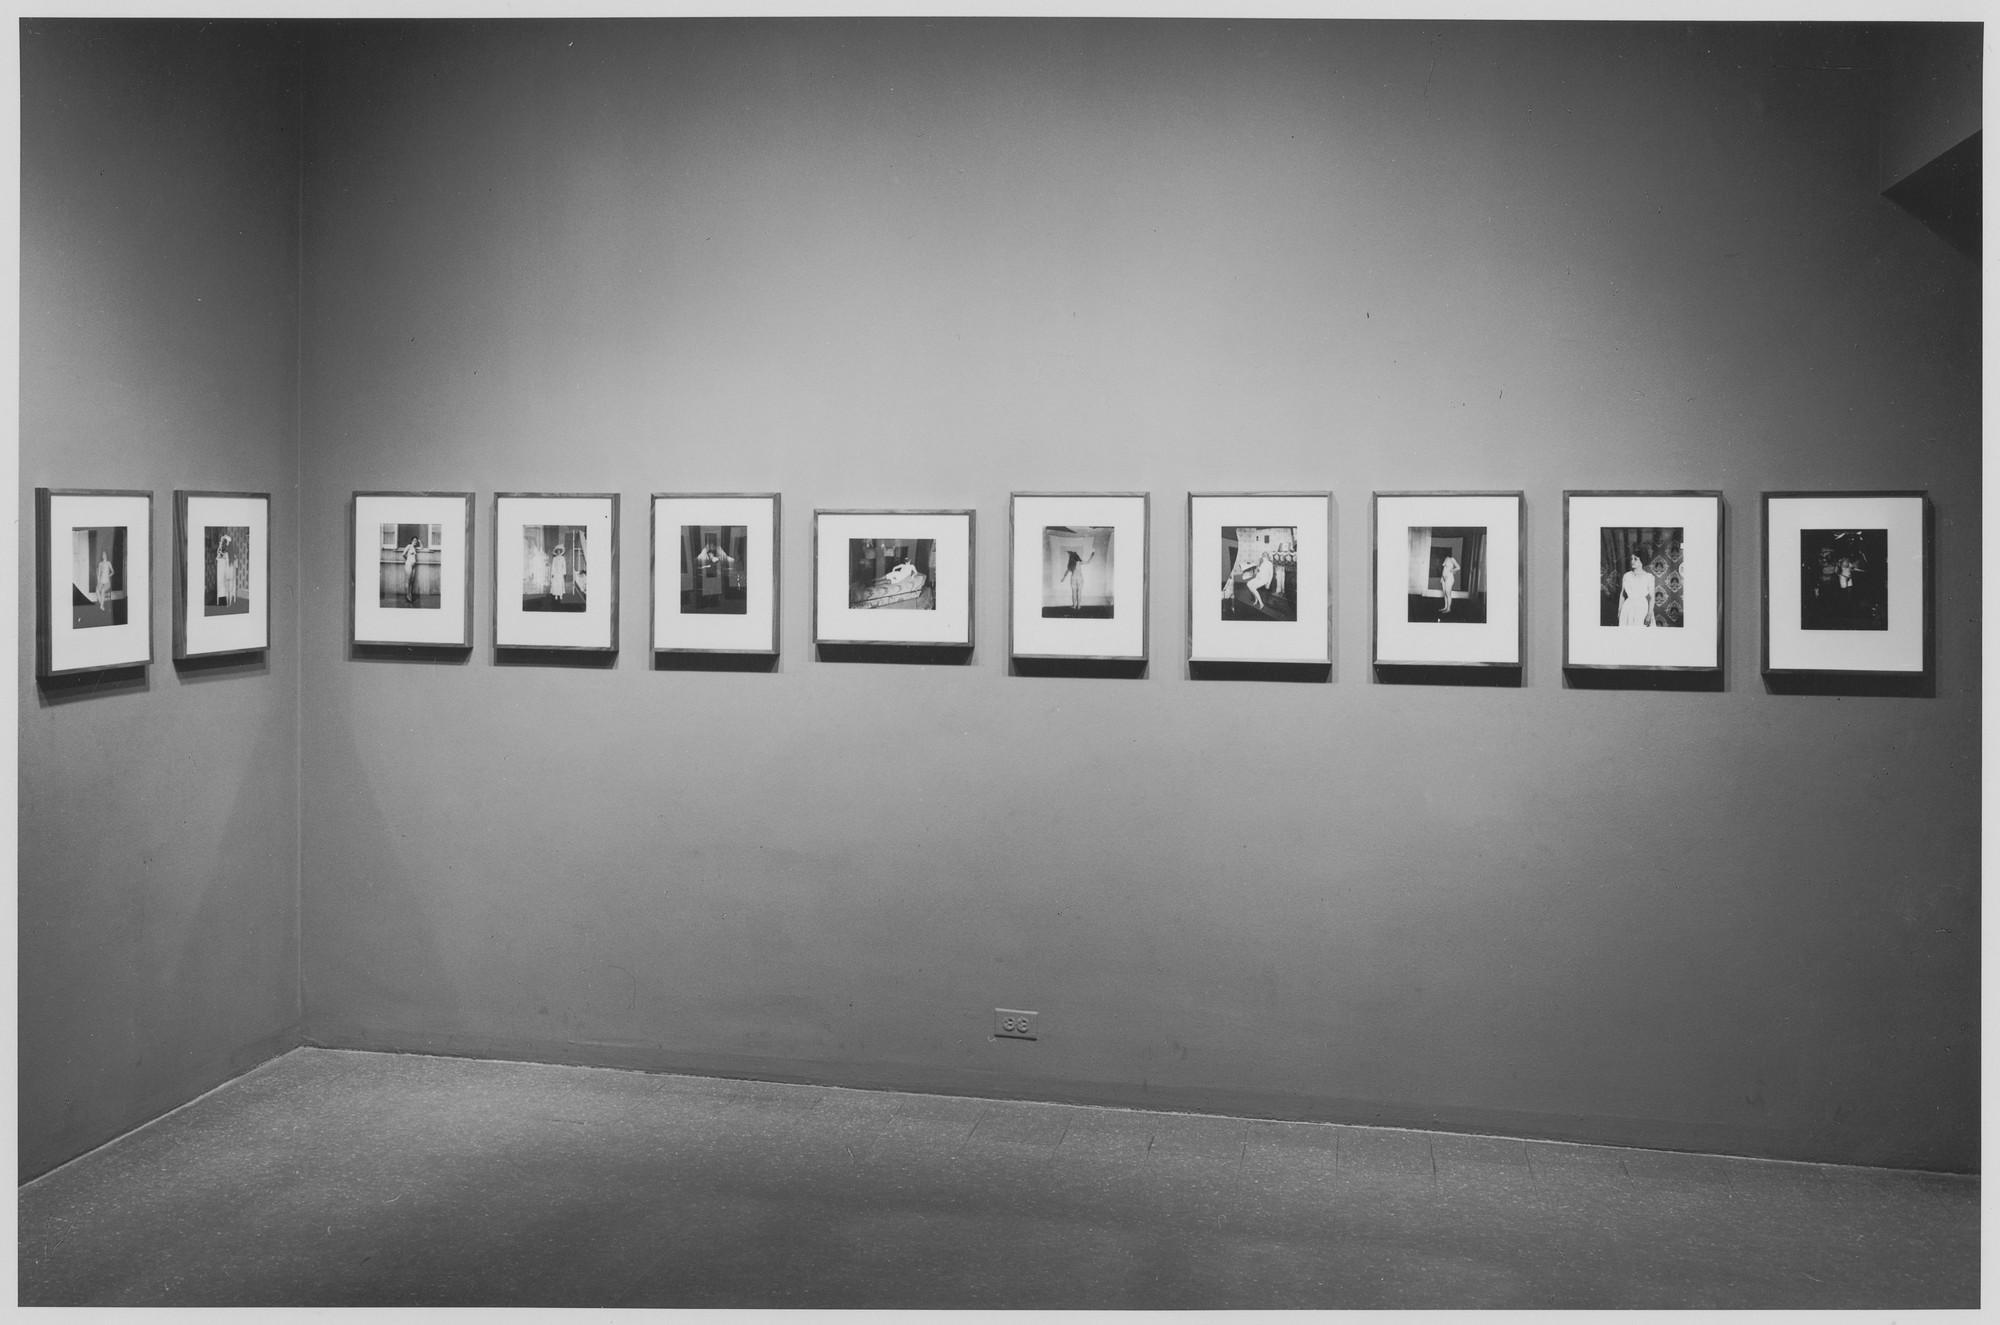 "Installation view of the exhibition, ""E.J. Bellocq:  Storyville Portraits."" November 19, 1970–January 10, 1971. Photographic Archive. The Museum of Modern Art Archives, New York. IN945.1. Photograph by James Mathews."